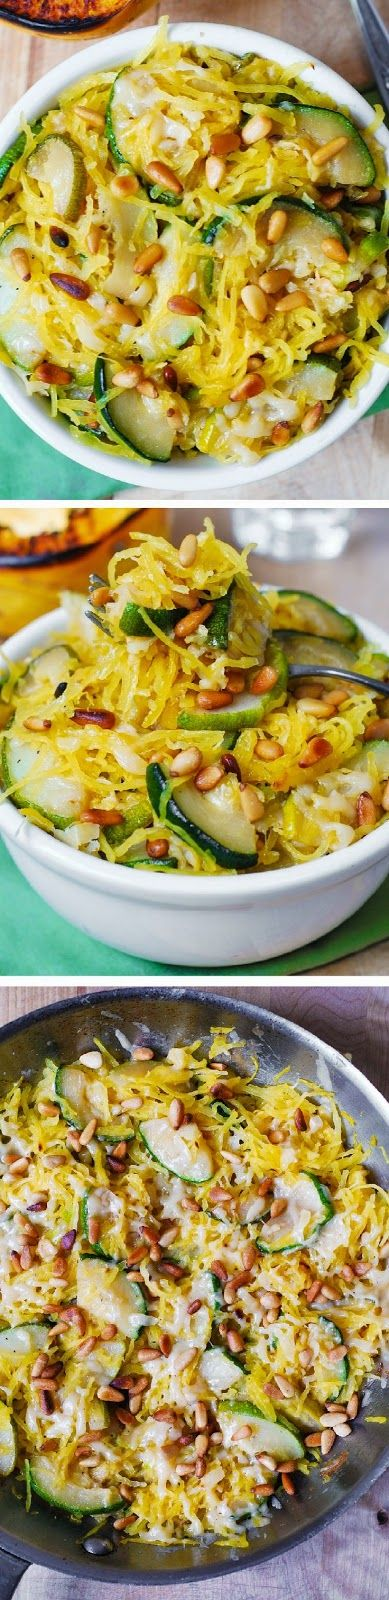 ... Spaghetti Squash on Pinterest | Spinach, Quiche and Paleo spaghetti